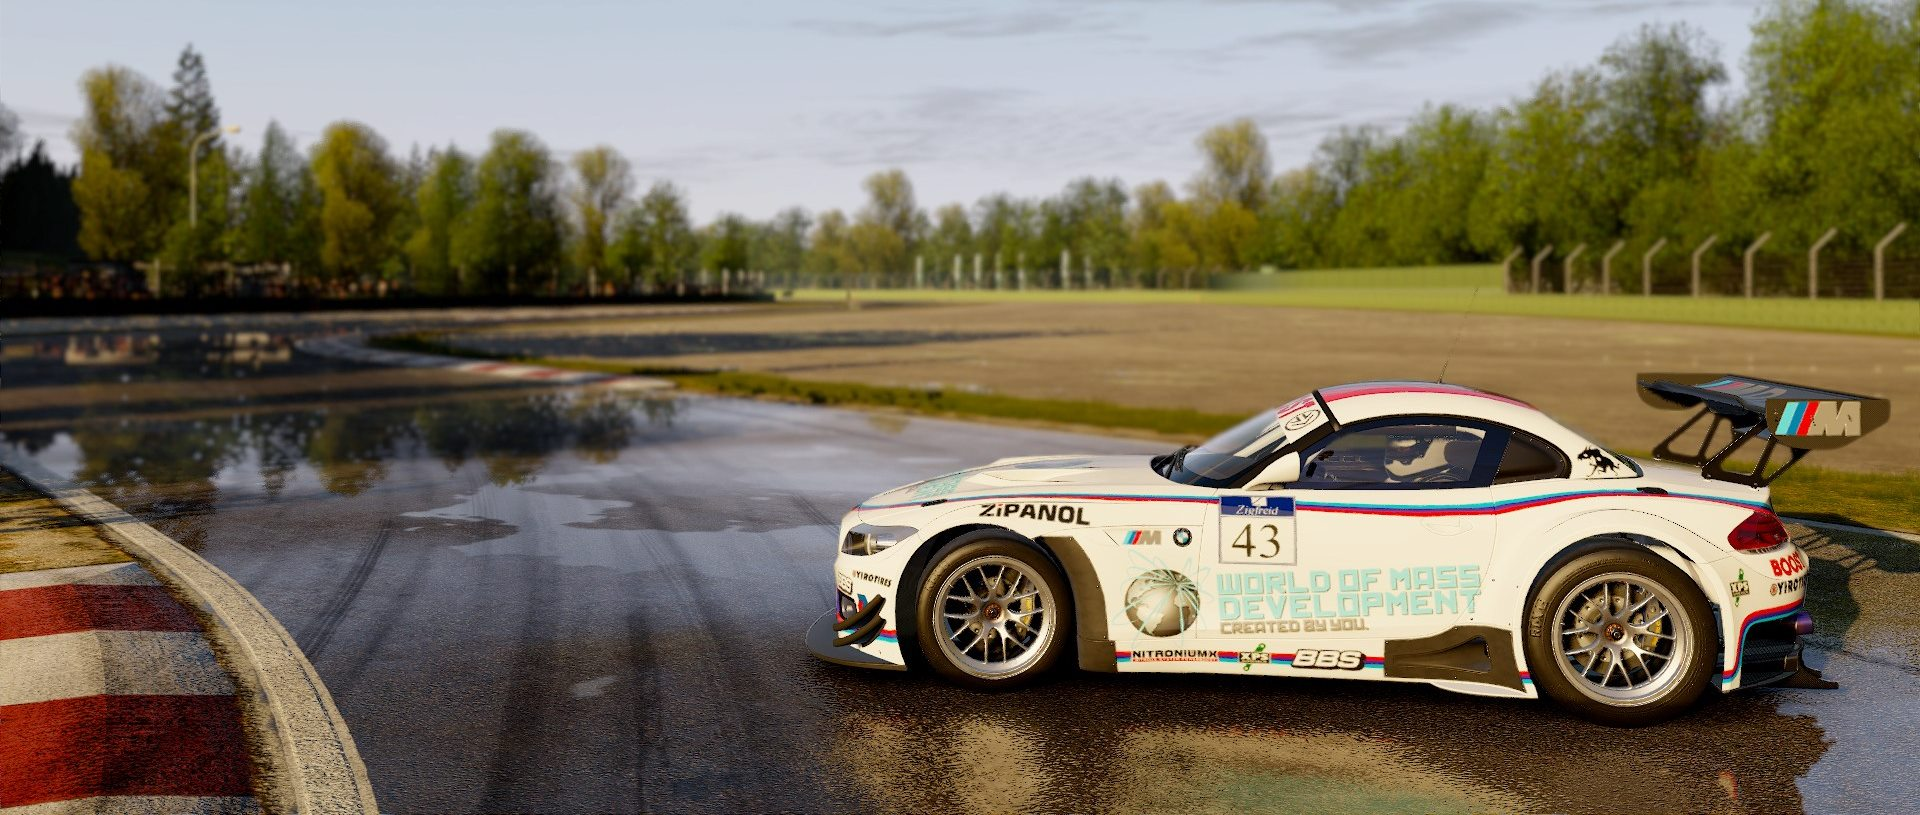 Project CARS se actu